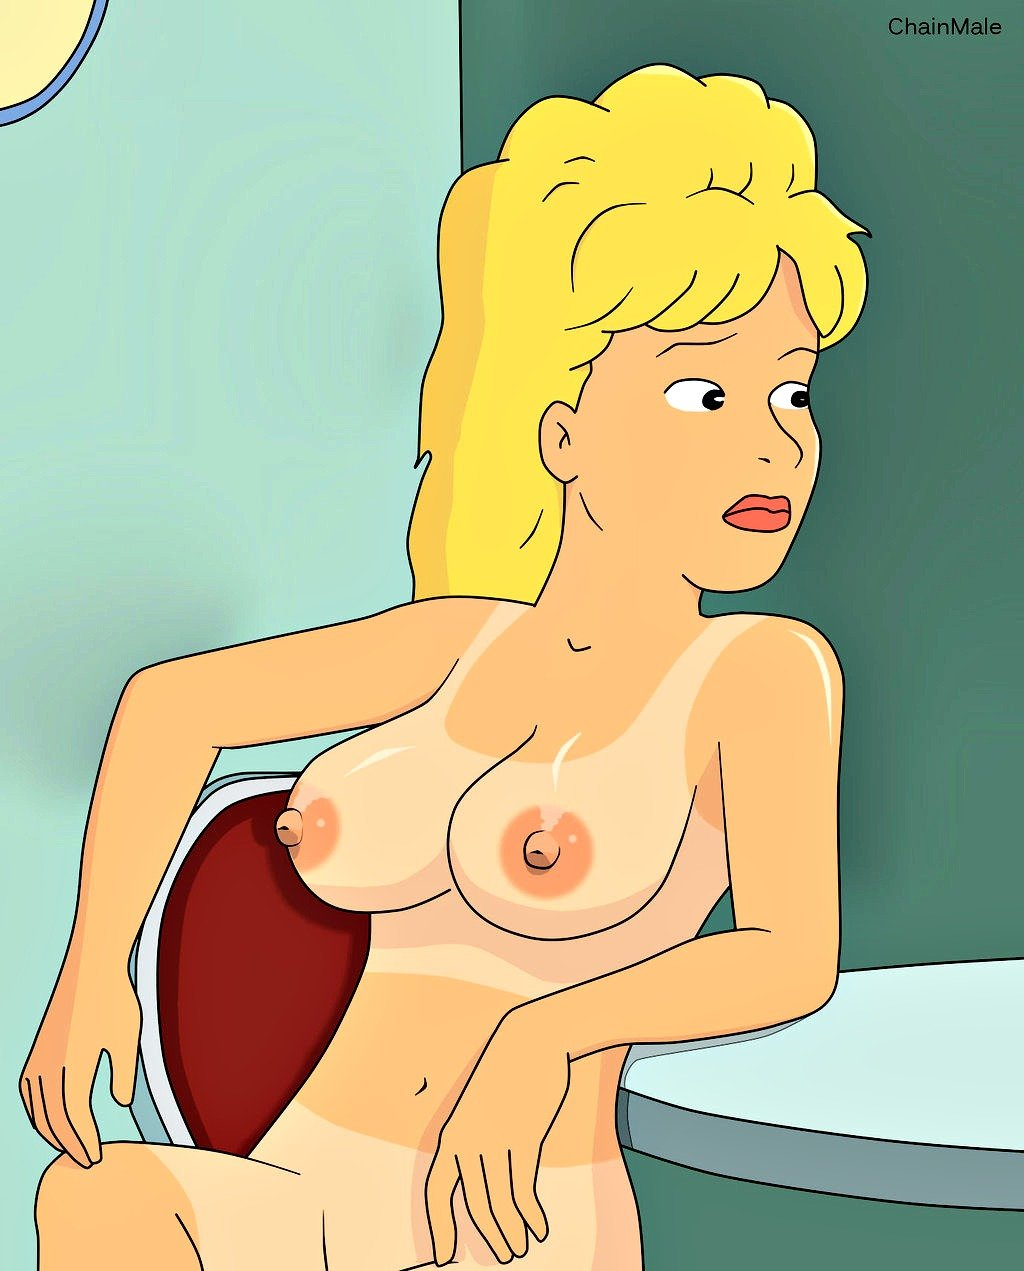 king of the hill nude girls